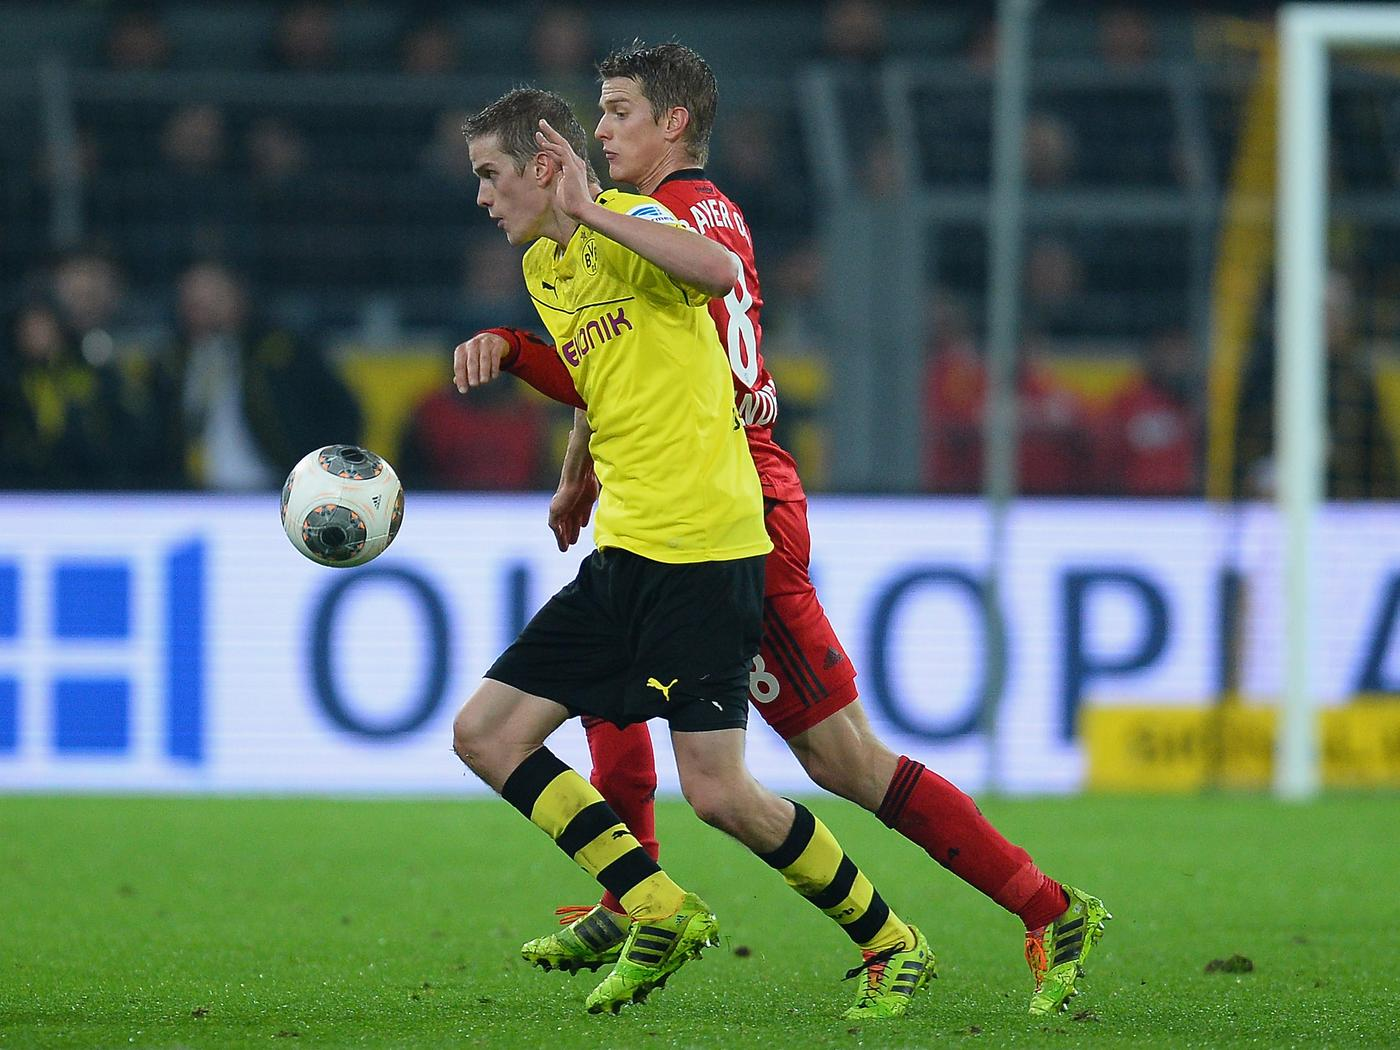 Arsenal MUST ditch interest in Ilkay Gundogan and sign one of Sven or Lars Bender, says Dietmar Hamann